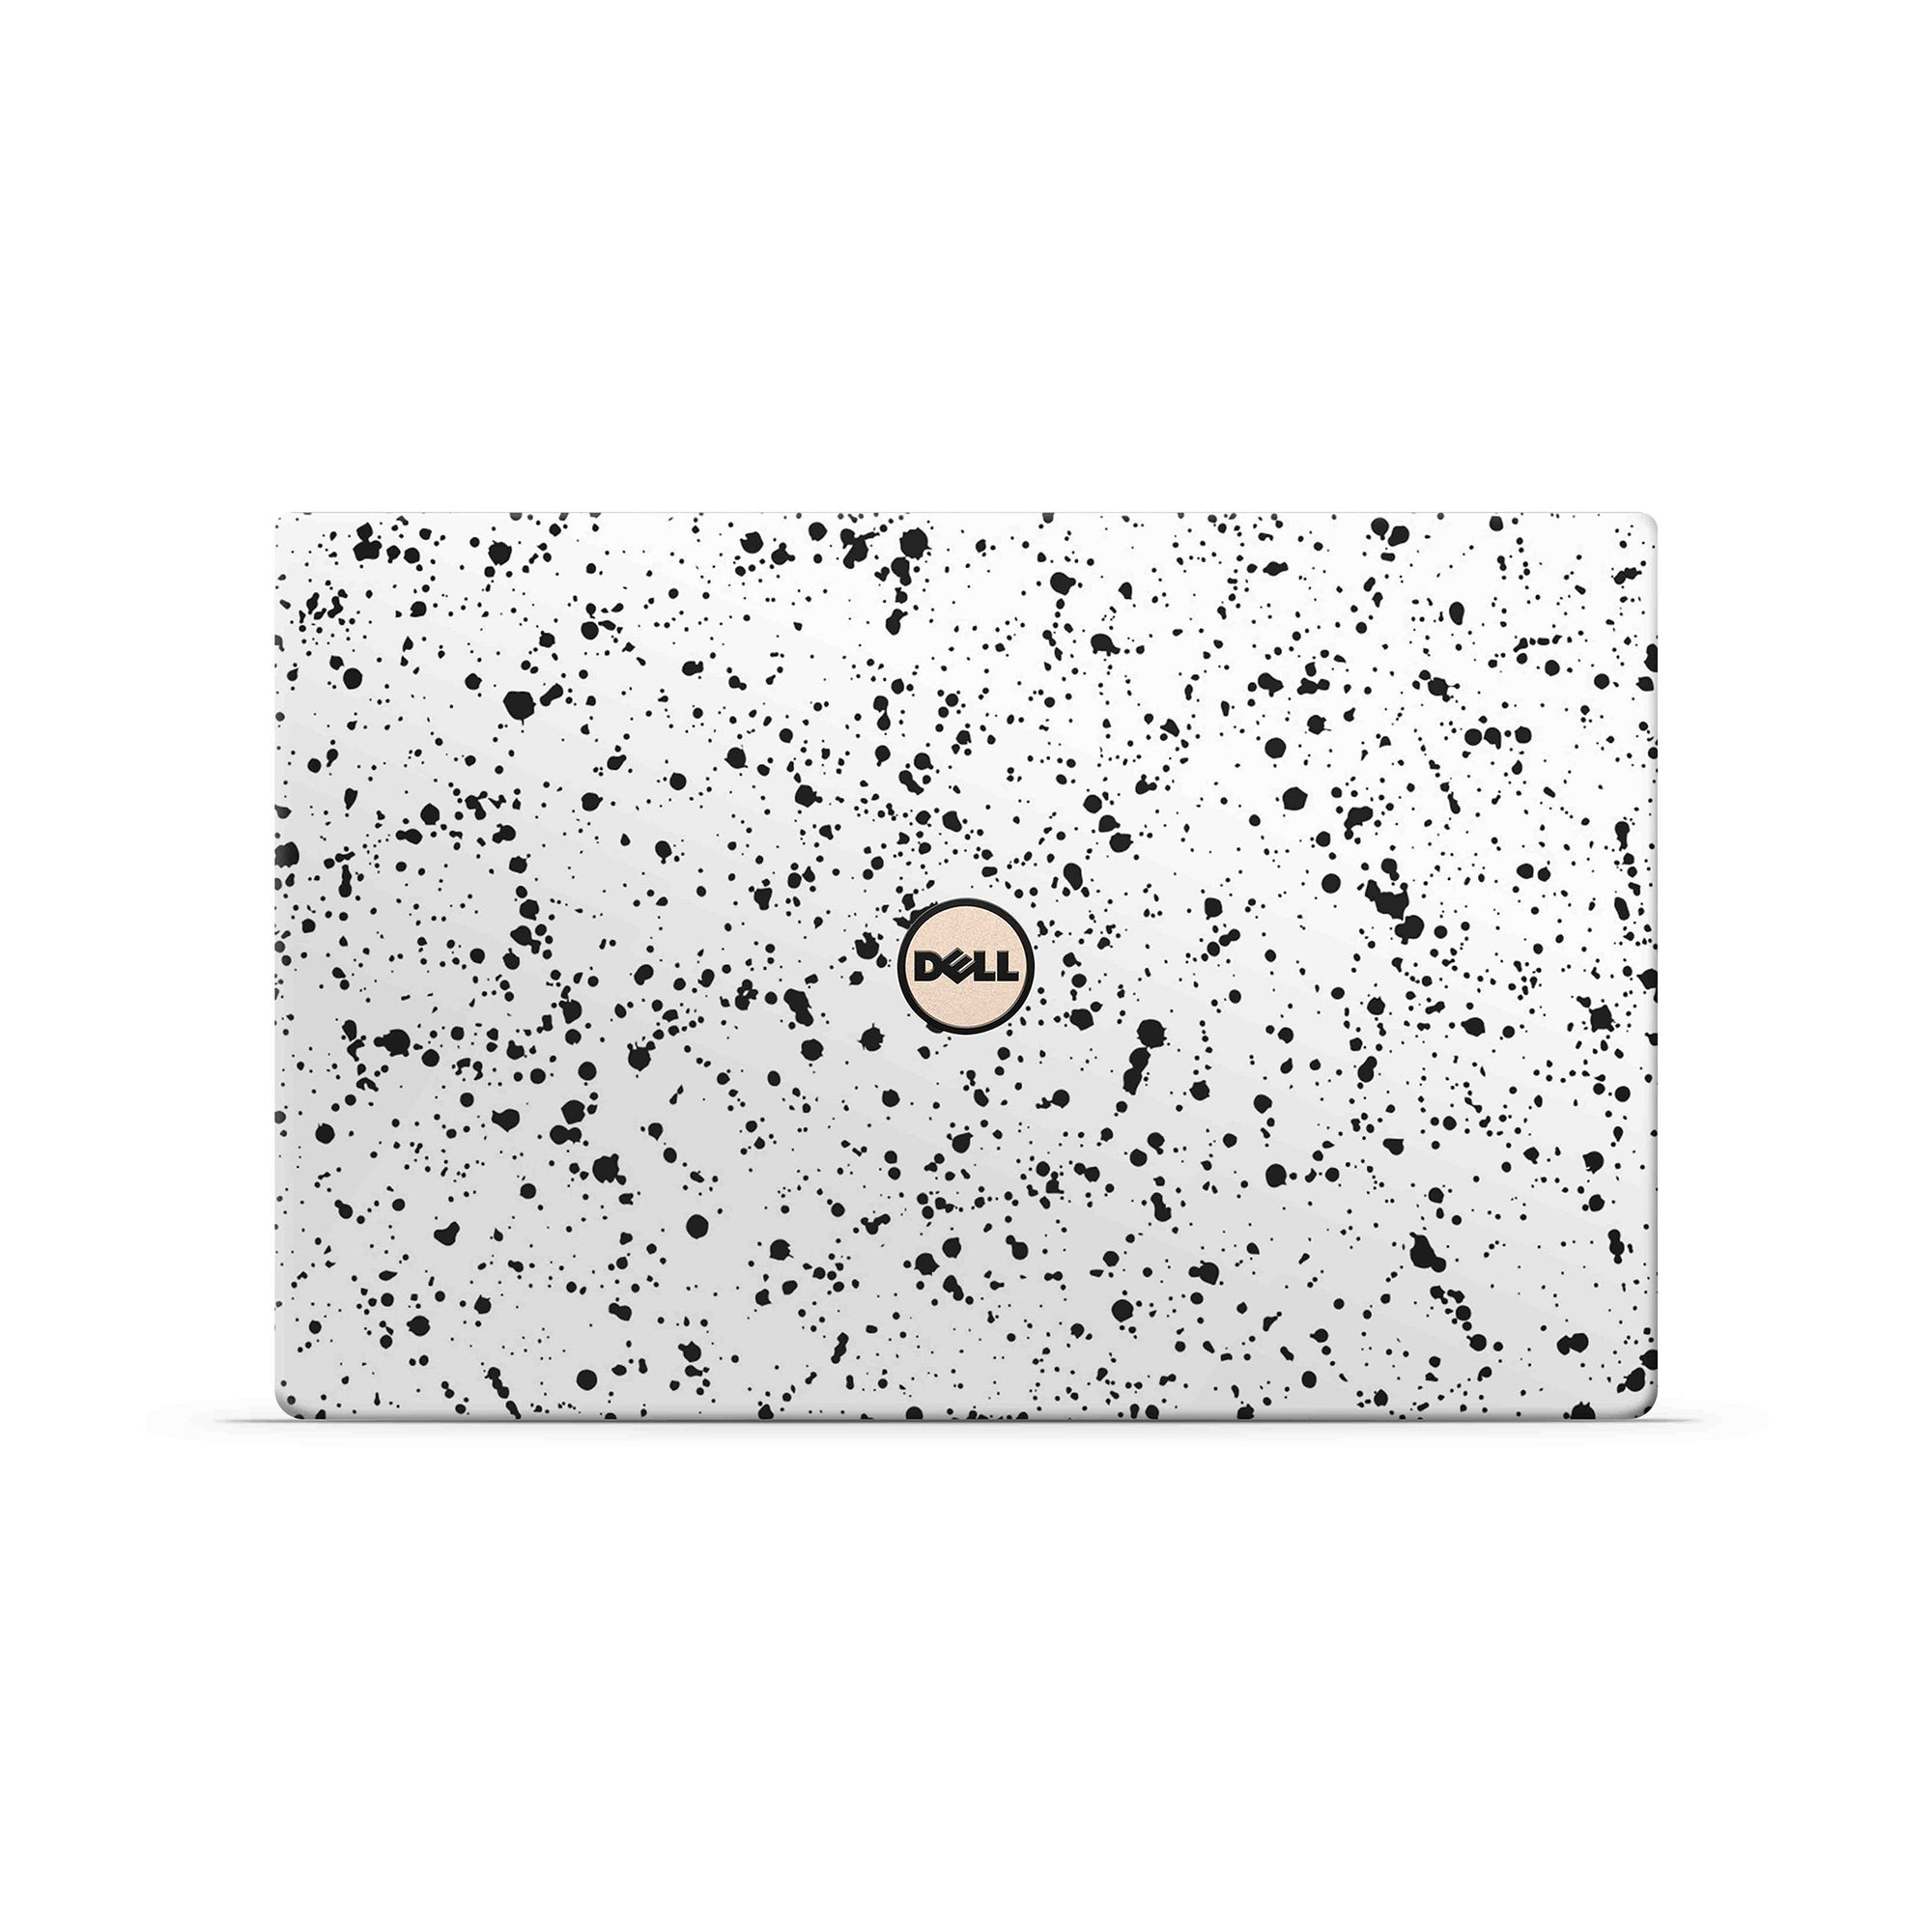 White Speckle XPS 13 (9300) Skin